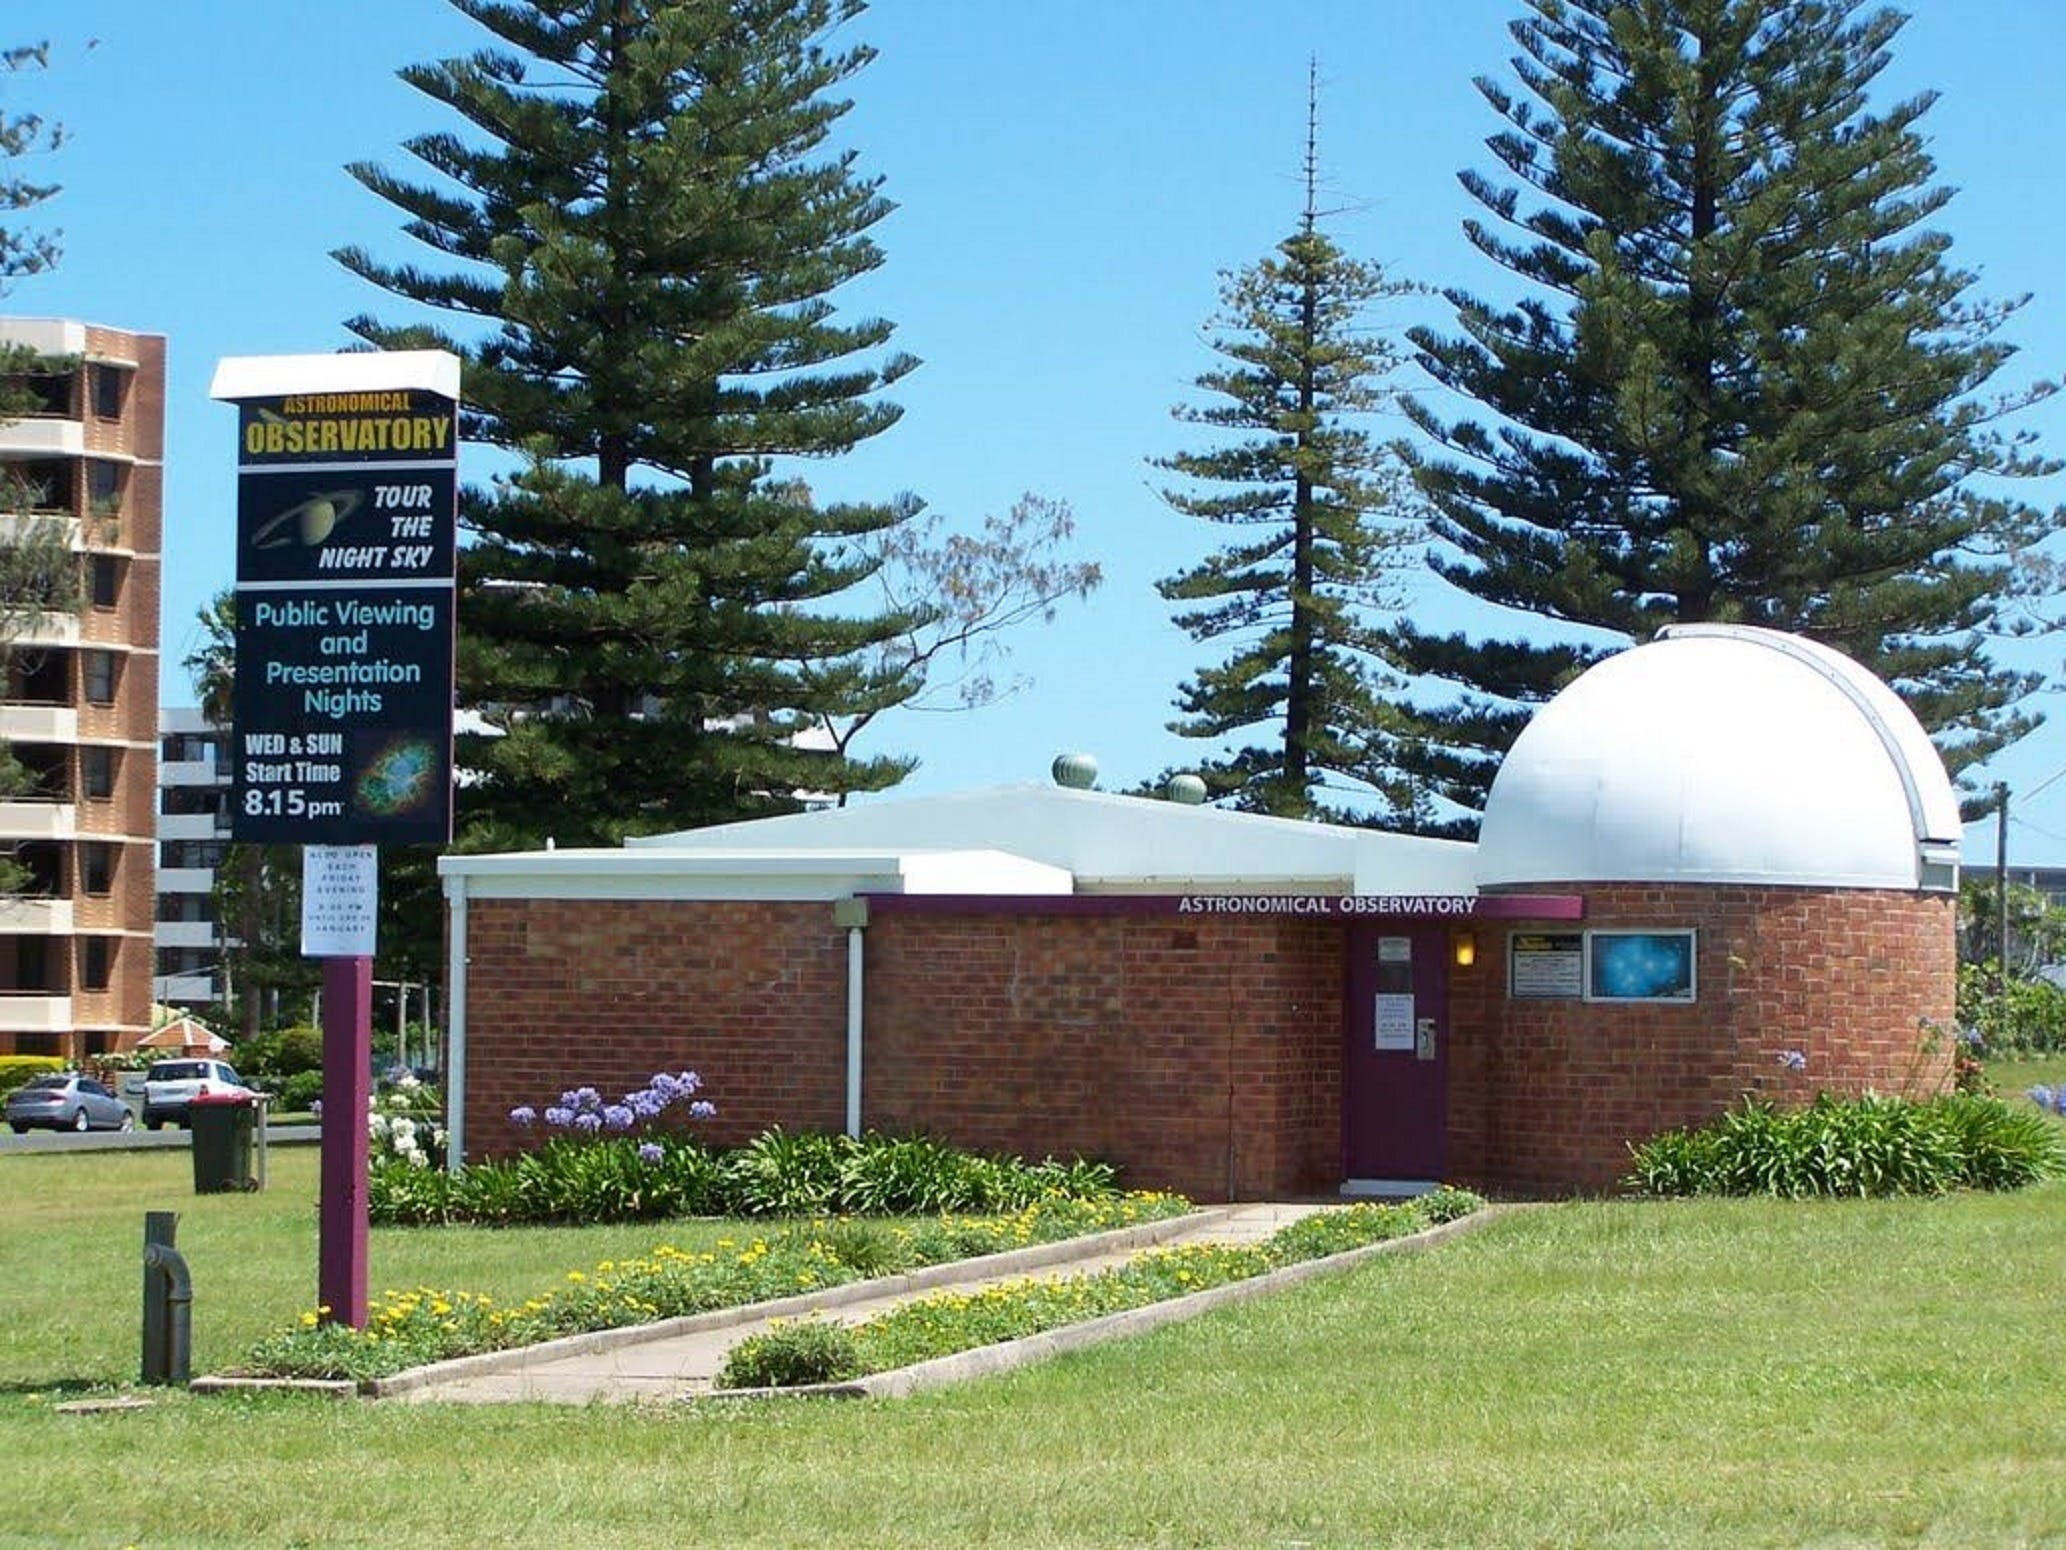 Port Macquarie Astronomical Observatory - Accommodation Airlie Beach